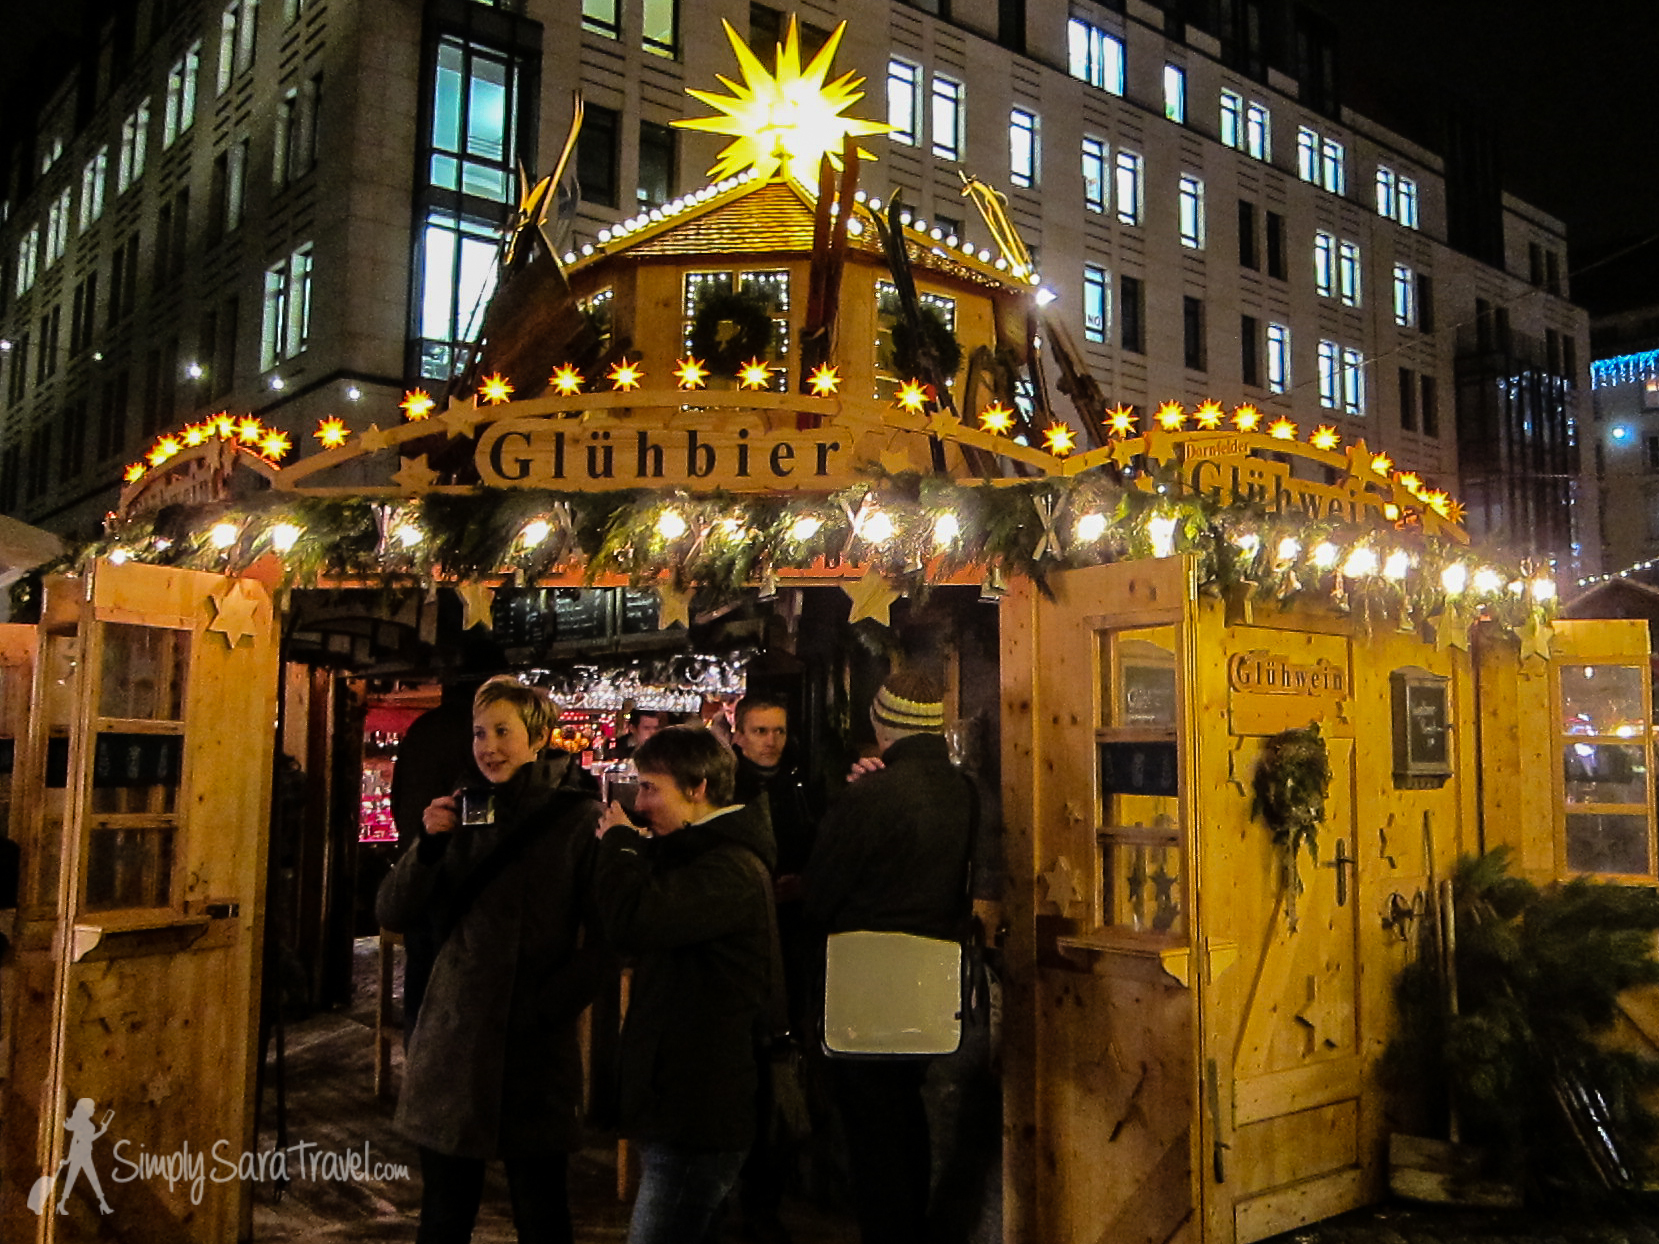 As we headed north in Germany, temperatures dropped and  glühwein stands became more eleborate. Dresden had a bunch of makeshift bars like this one that offered added warmth.